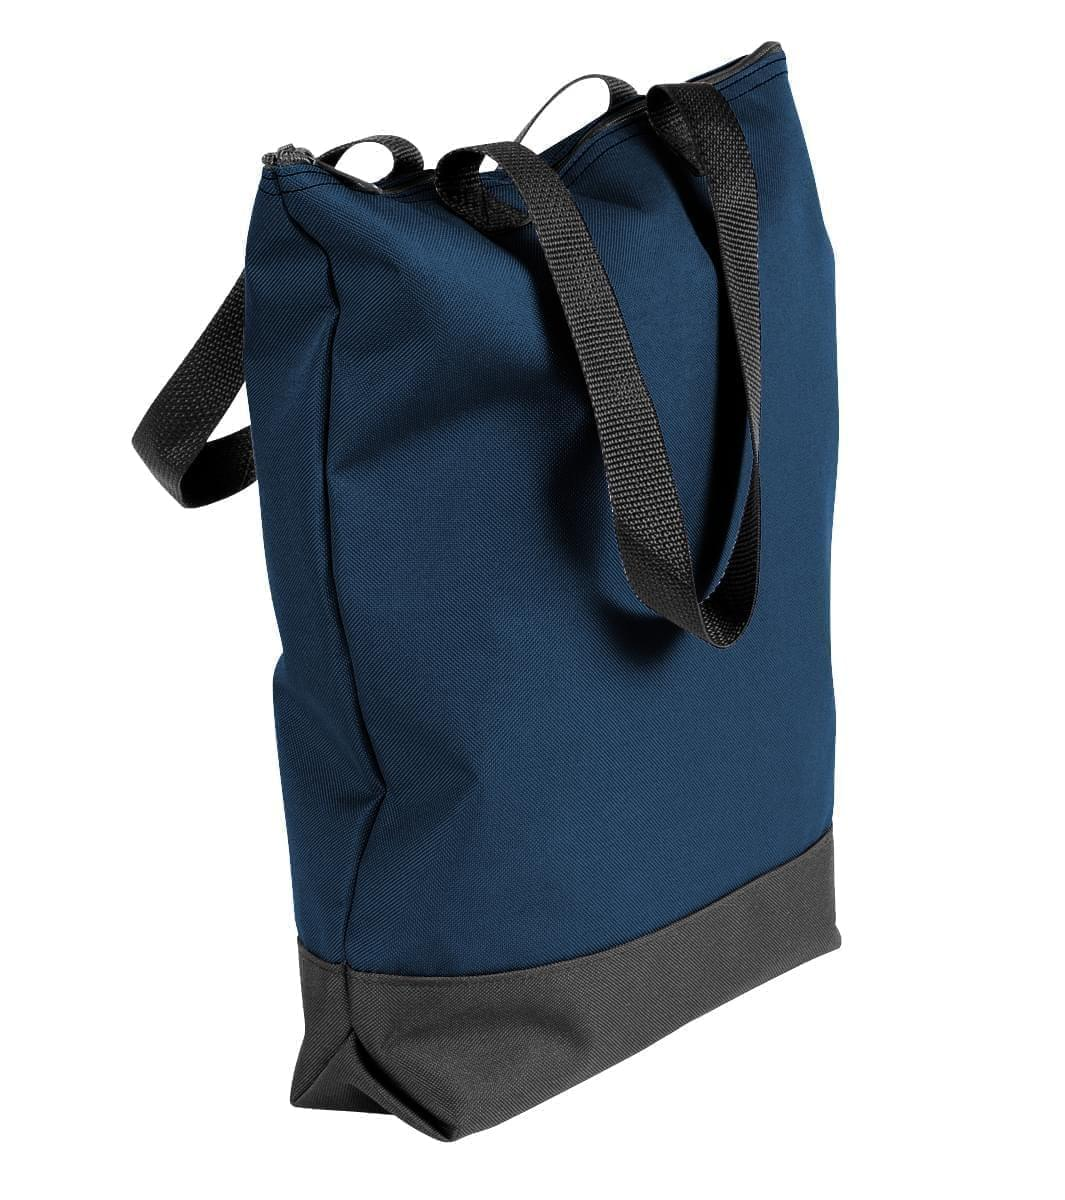 USA Made Canvas Portfolio Tote Bags, Navy-Black, 1AAMX1UACR